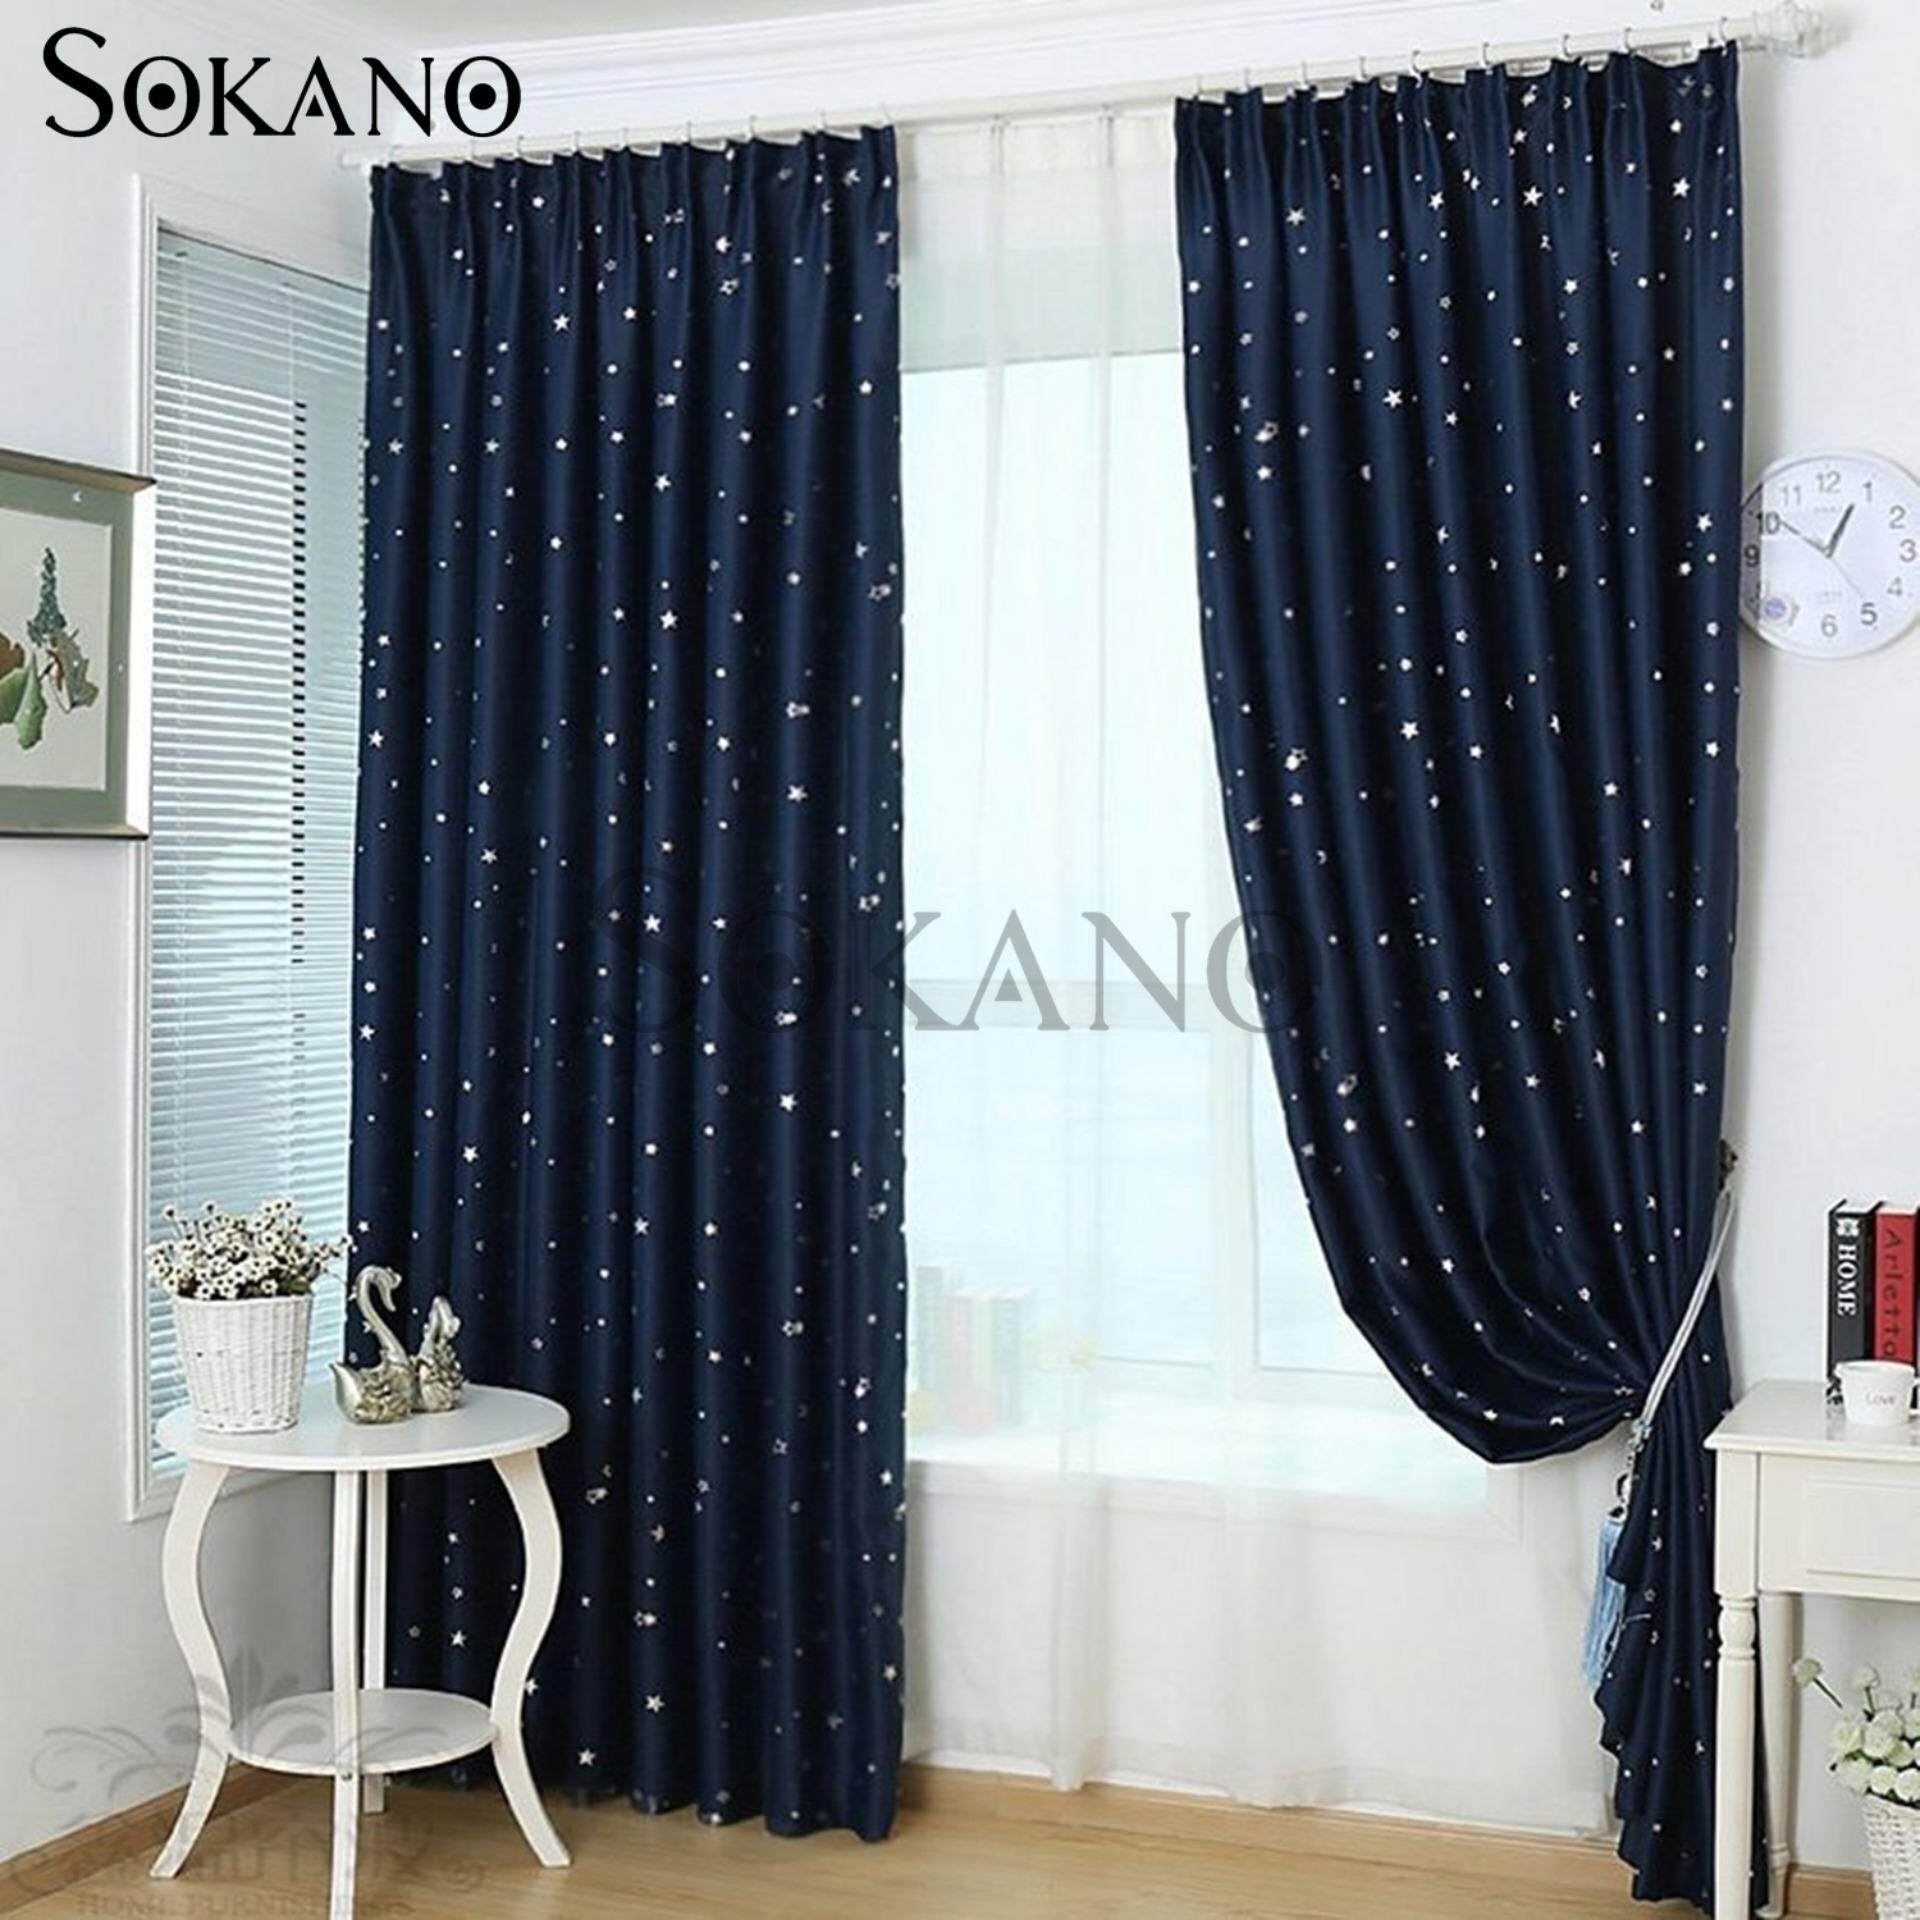 SOKANO CT020 Premium Blackout Curtain 1 Panel (200cm x 270cm)- Dark Blue Star Design